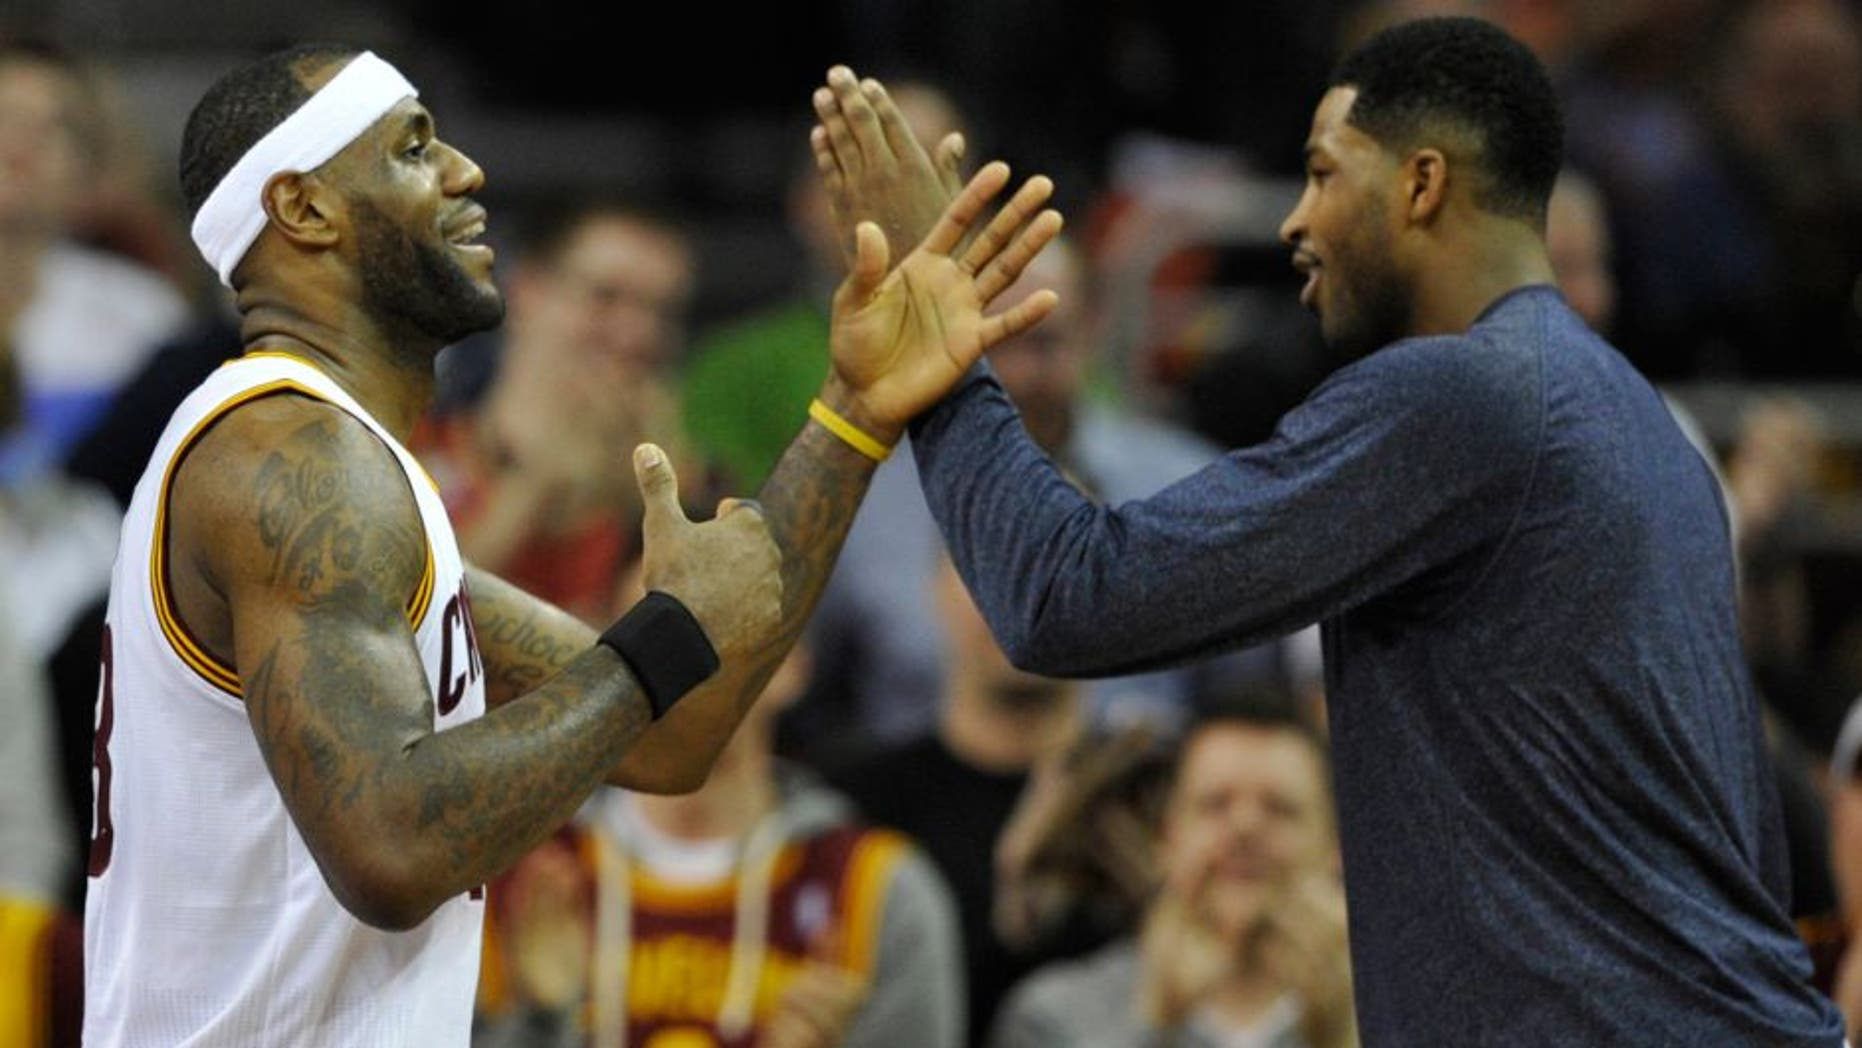 Feb 5, 2015; Cleveland, OH, USA; Cleveland Cavaliers forward LeBron James (left) celebrates with center Tristan Thompson (13) in the second quarter against the Los Angeles Clippers at Quicken Loans Arena. Mandatory Credit: David Richard-USA TODAY Sports